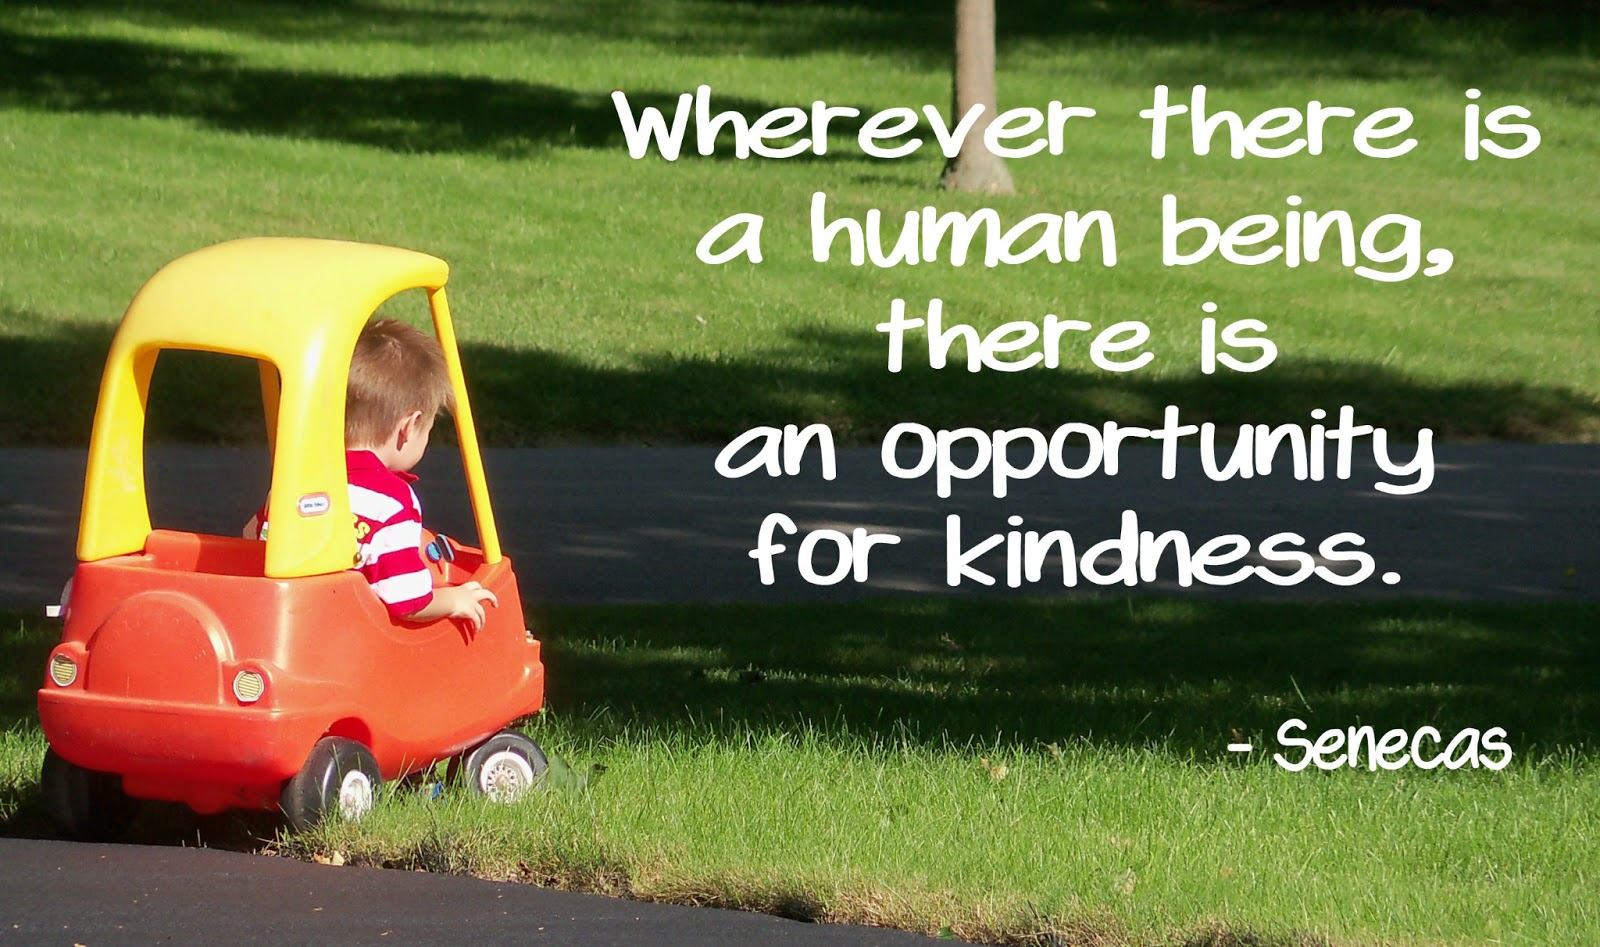 Kindness Quotes: Kindness Quotes (287 Quotes On Images) : Page 2